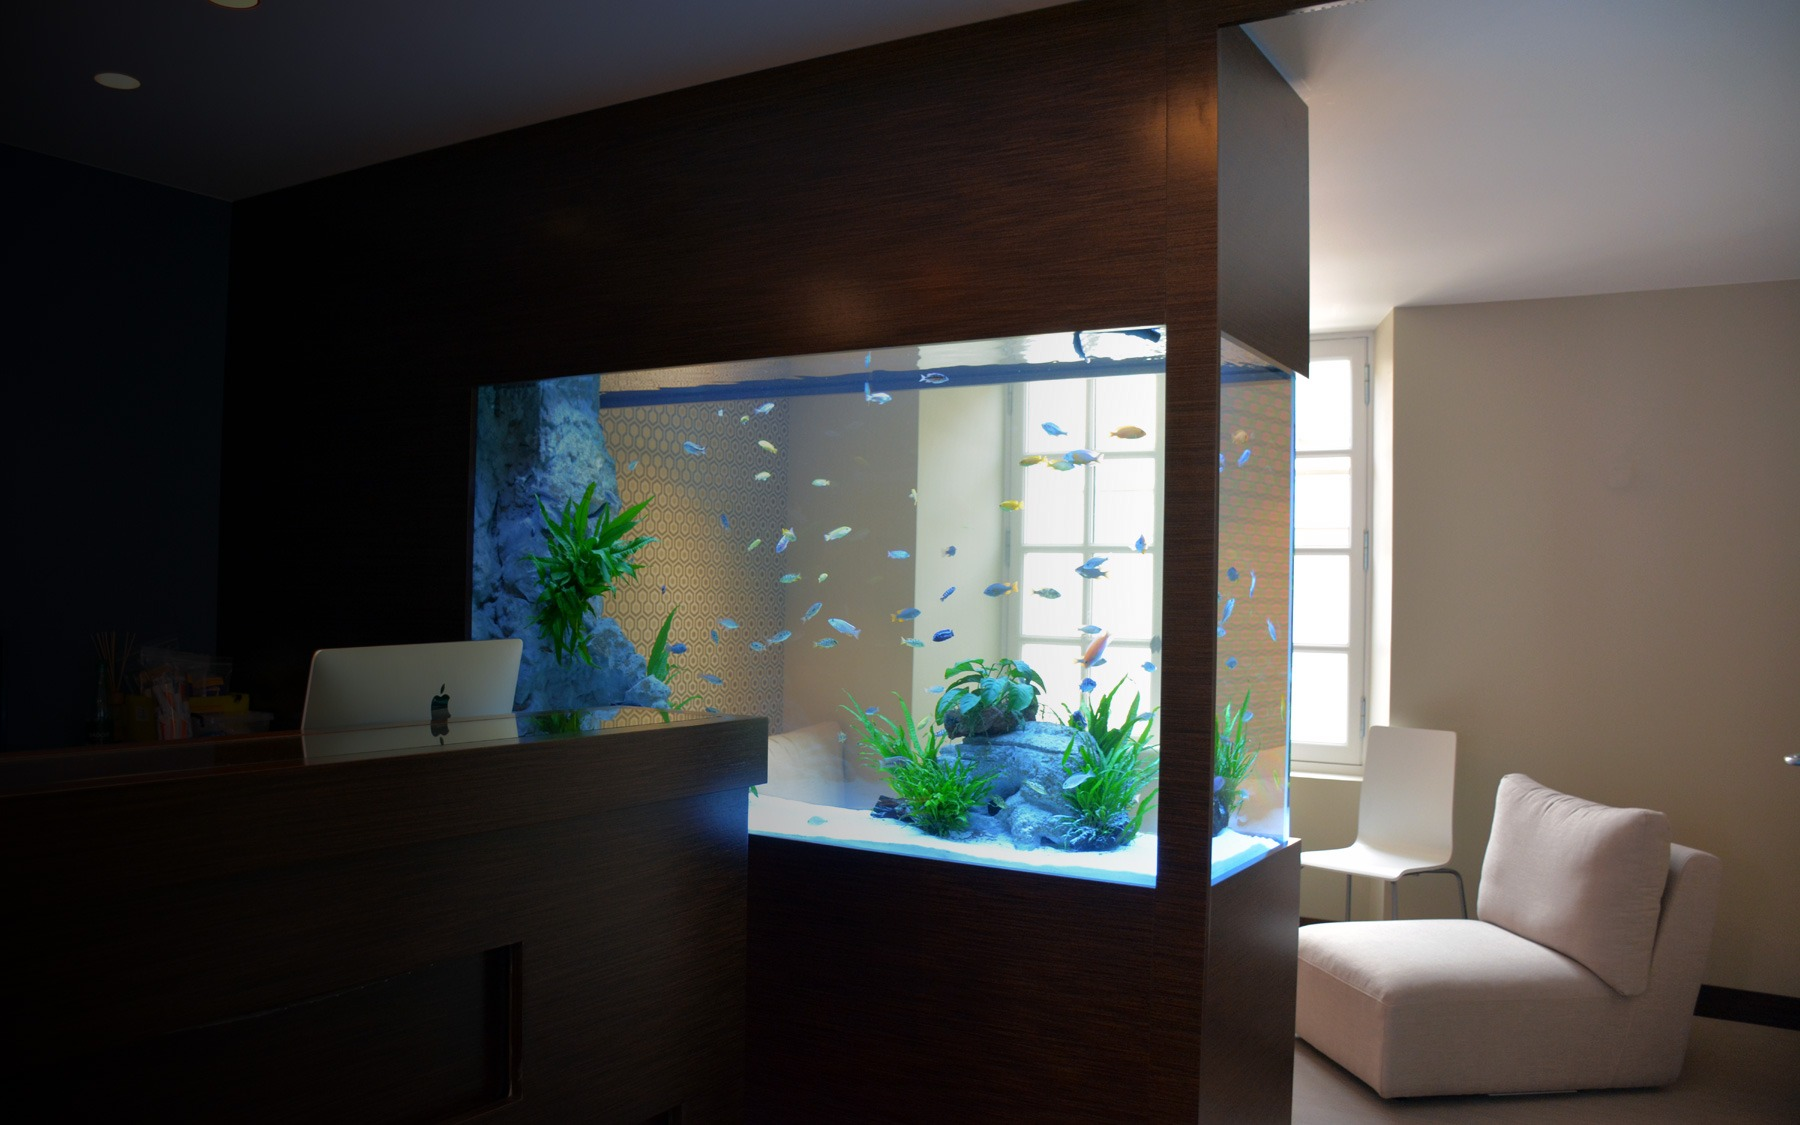 aquarium sur mesure dans un cabinet dentaire oc an d 39 interieur. Black Bedroom Furniture Sets. Home Design Ideas